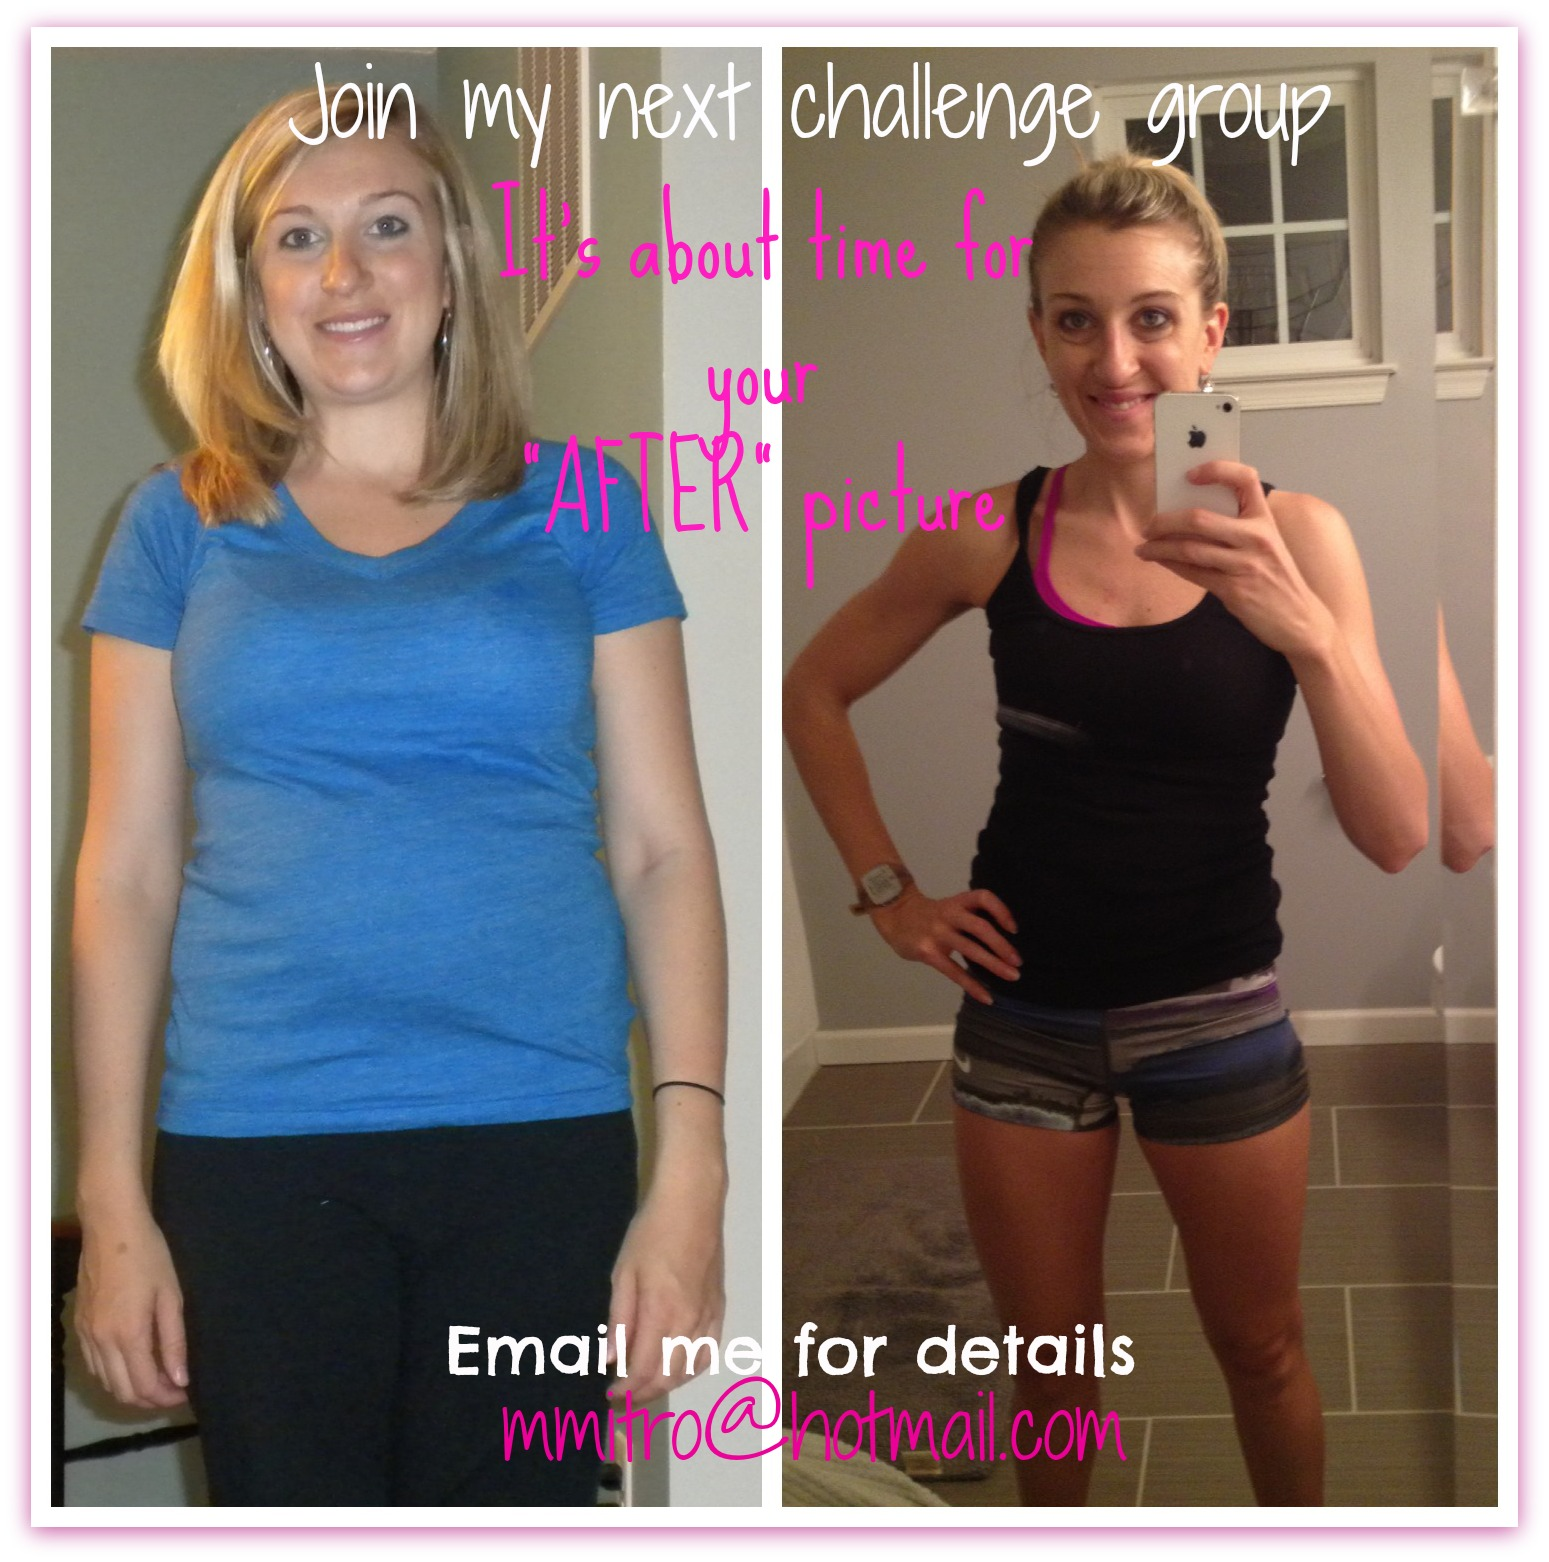 Committed to Get Fit: Summer Slim Down challenge Group, Clean Eating, Exercise and Support to ...